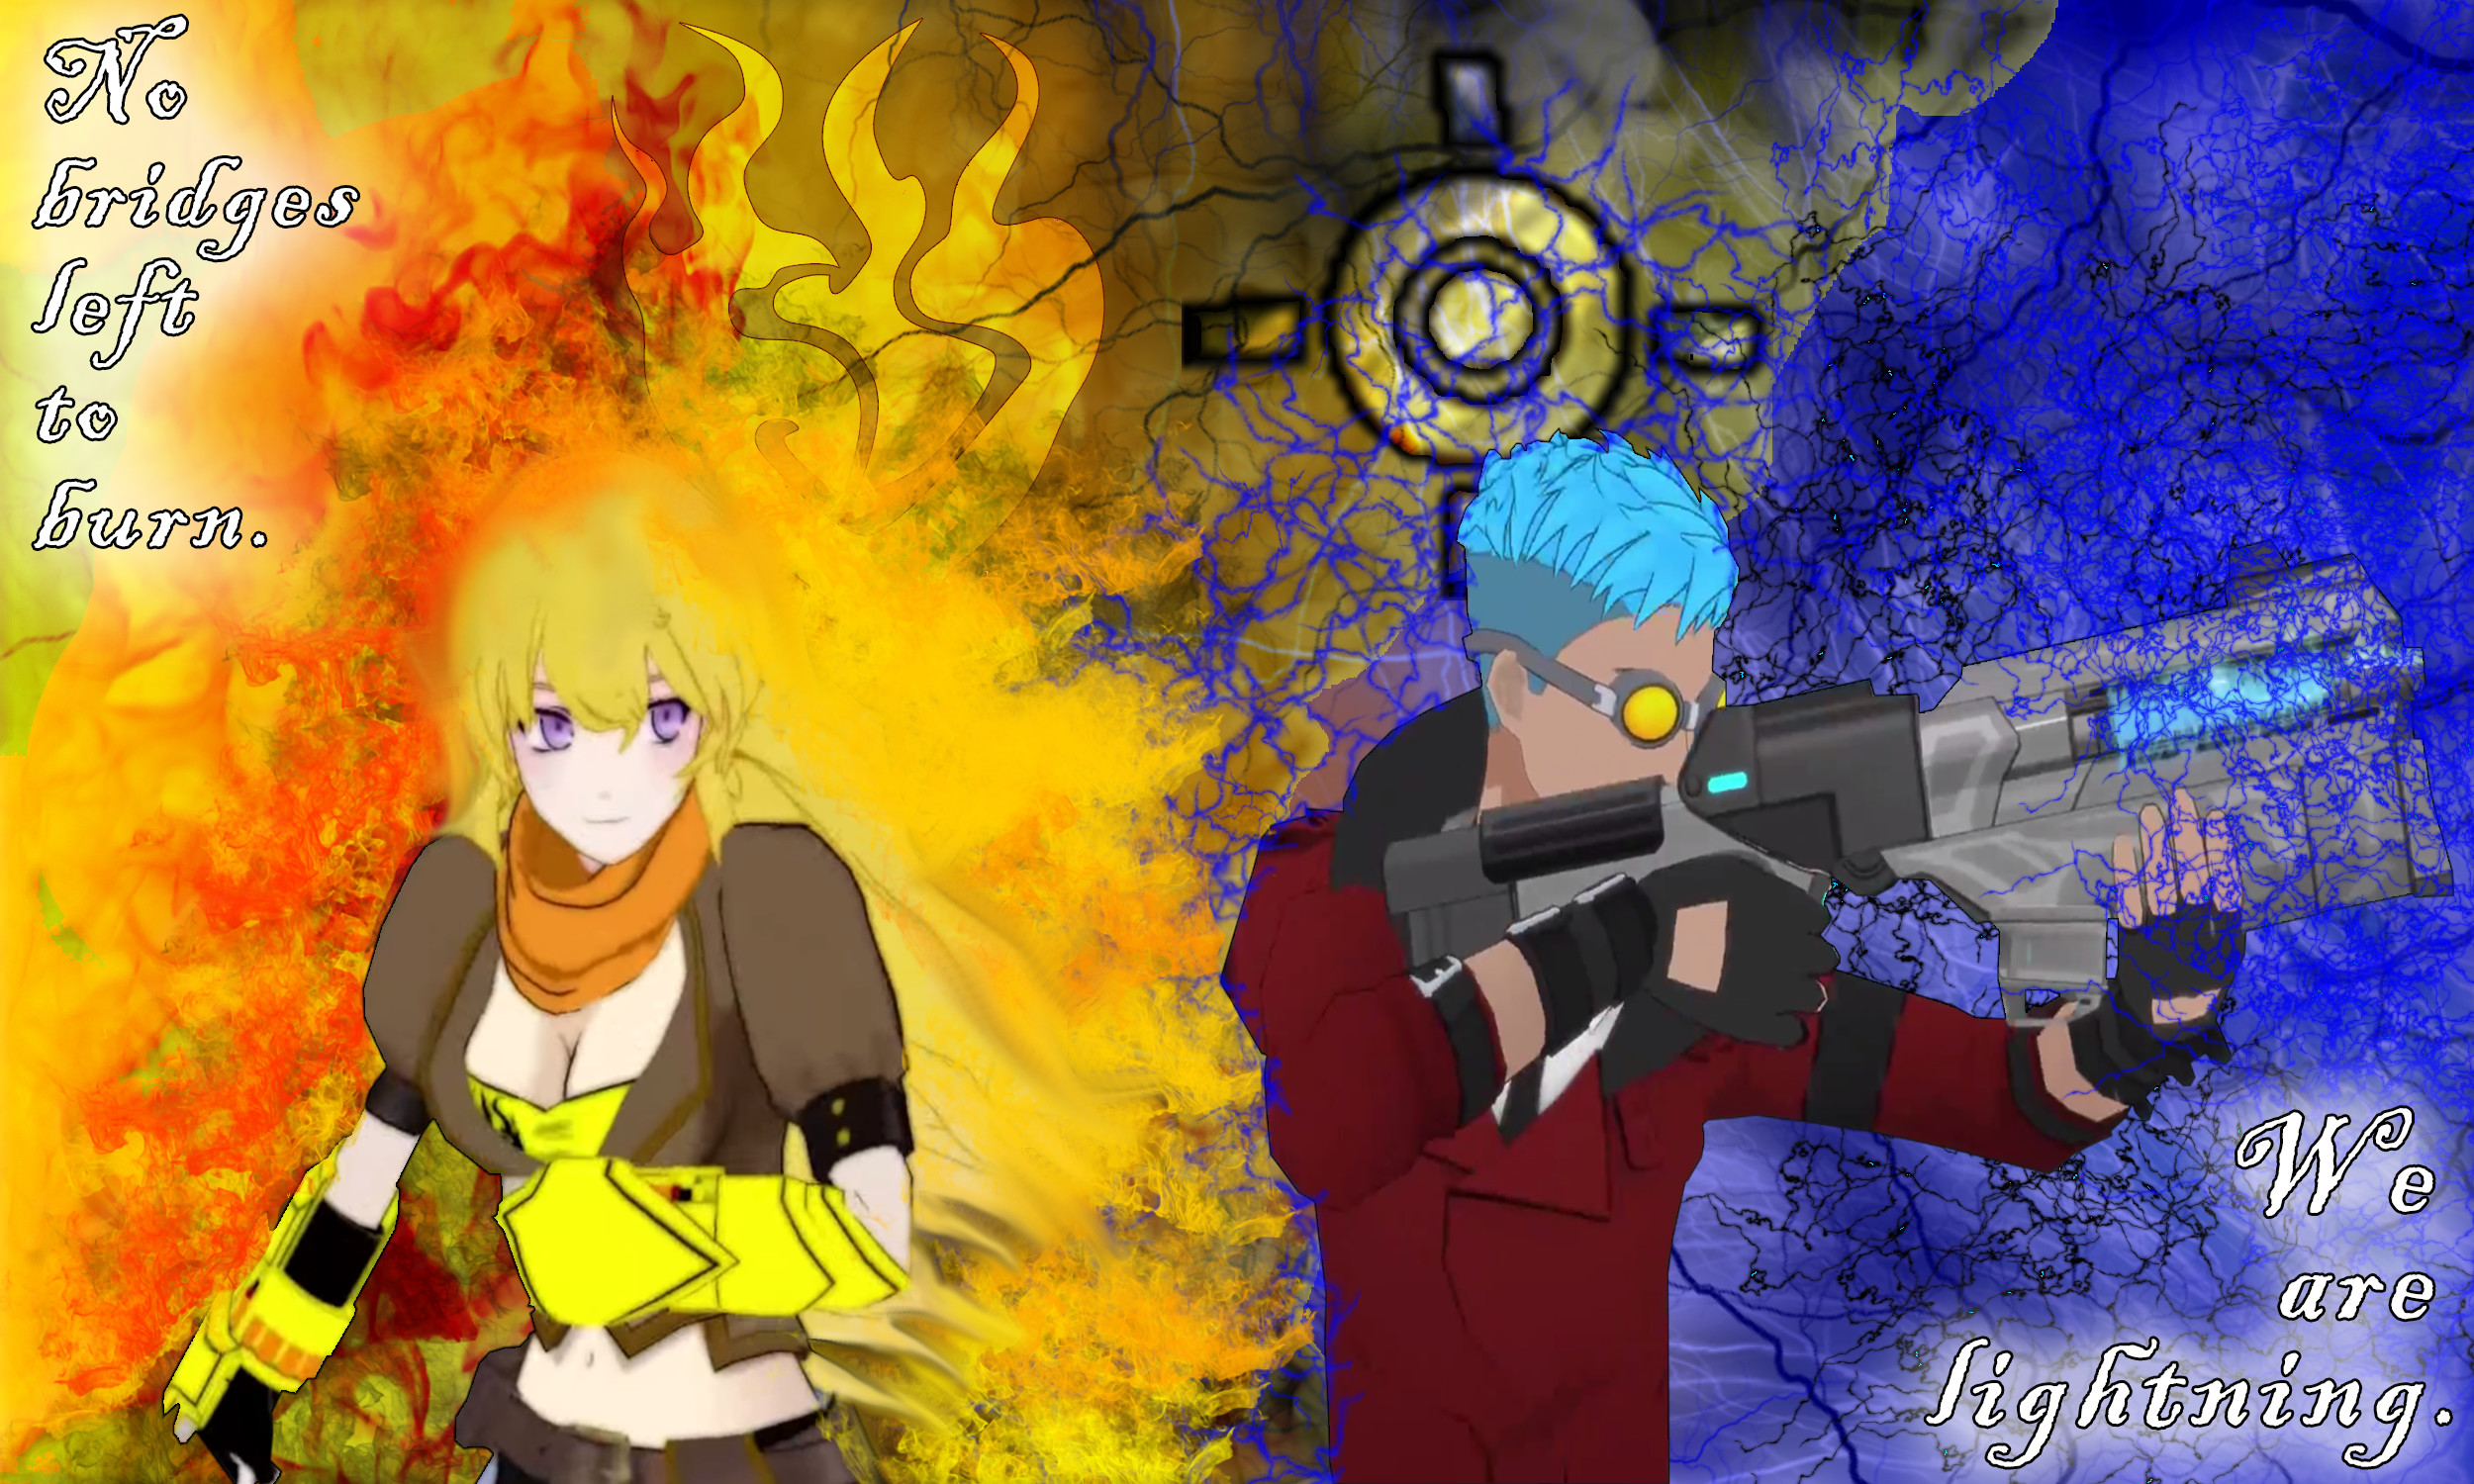 Res: 2500x1500, Yang and neptune | RWBY Yang and Neptune Wallpaper by MetalPorSiempre